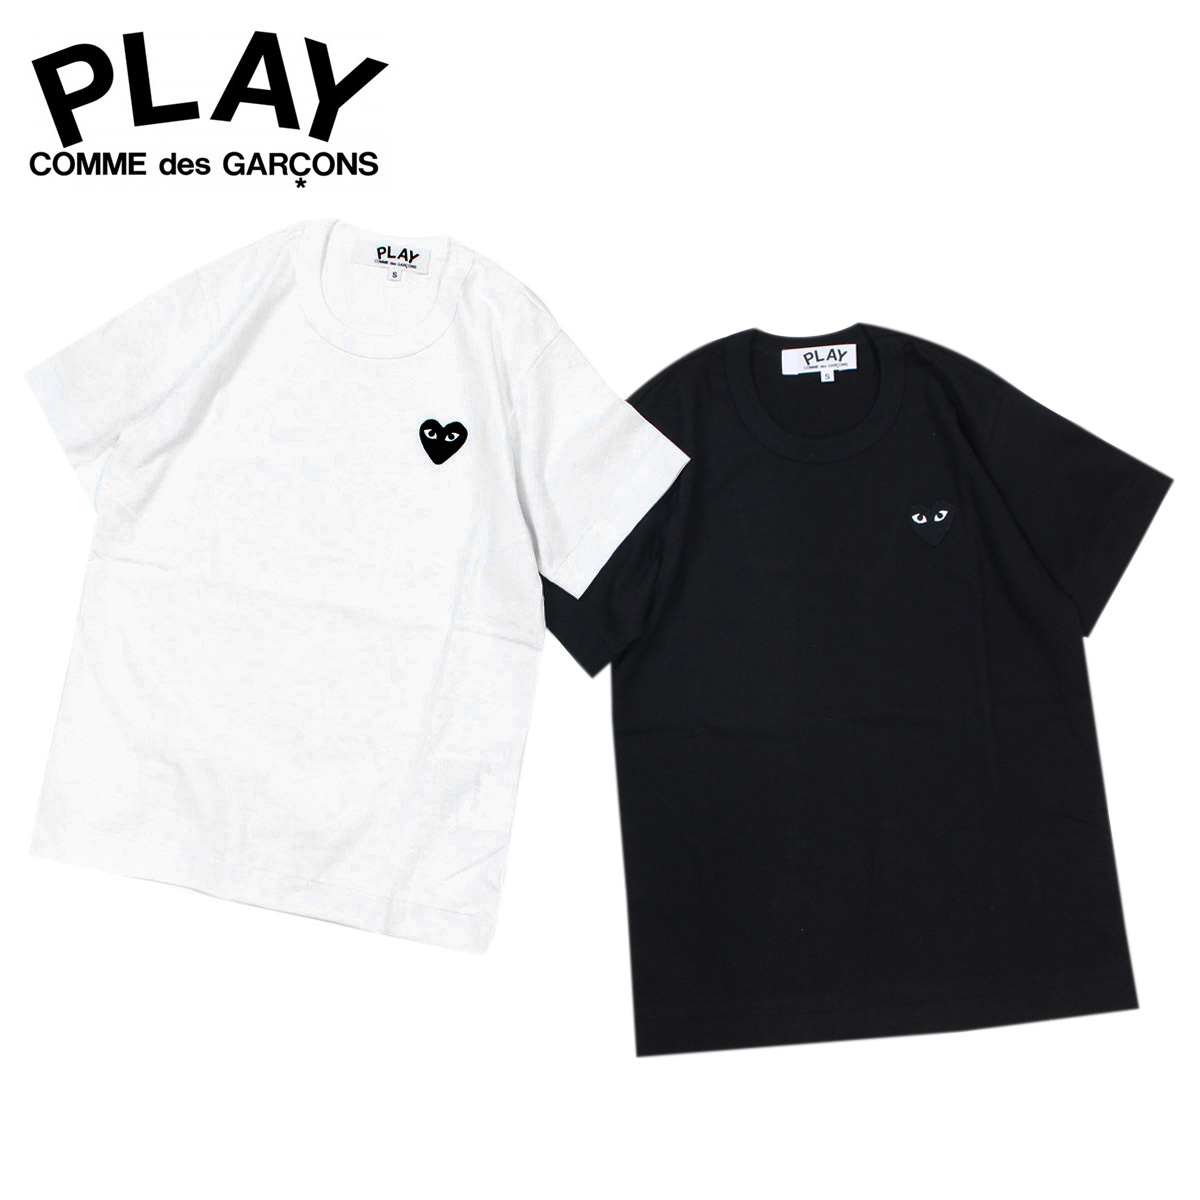 più recente 755a3 fe2ef コムデギャルソン PLAY COMME des GARCONS T-shirt Lady's short sleeves BLACK HEART  T-SHIRT black white AZ-T063